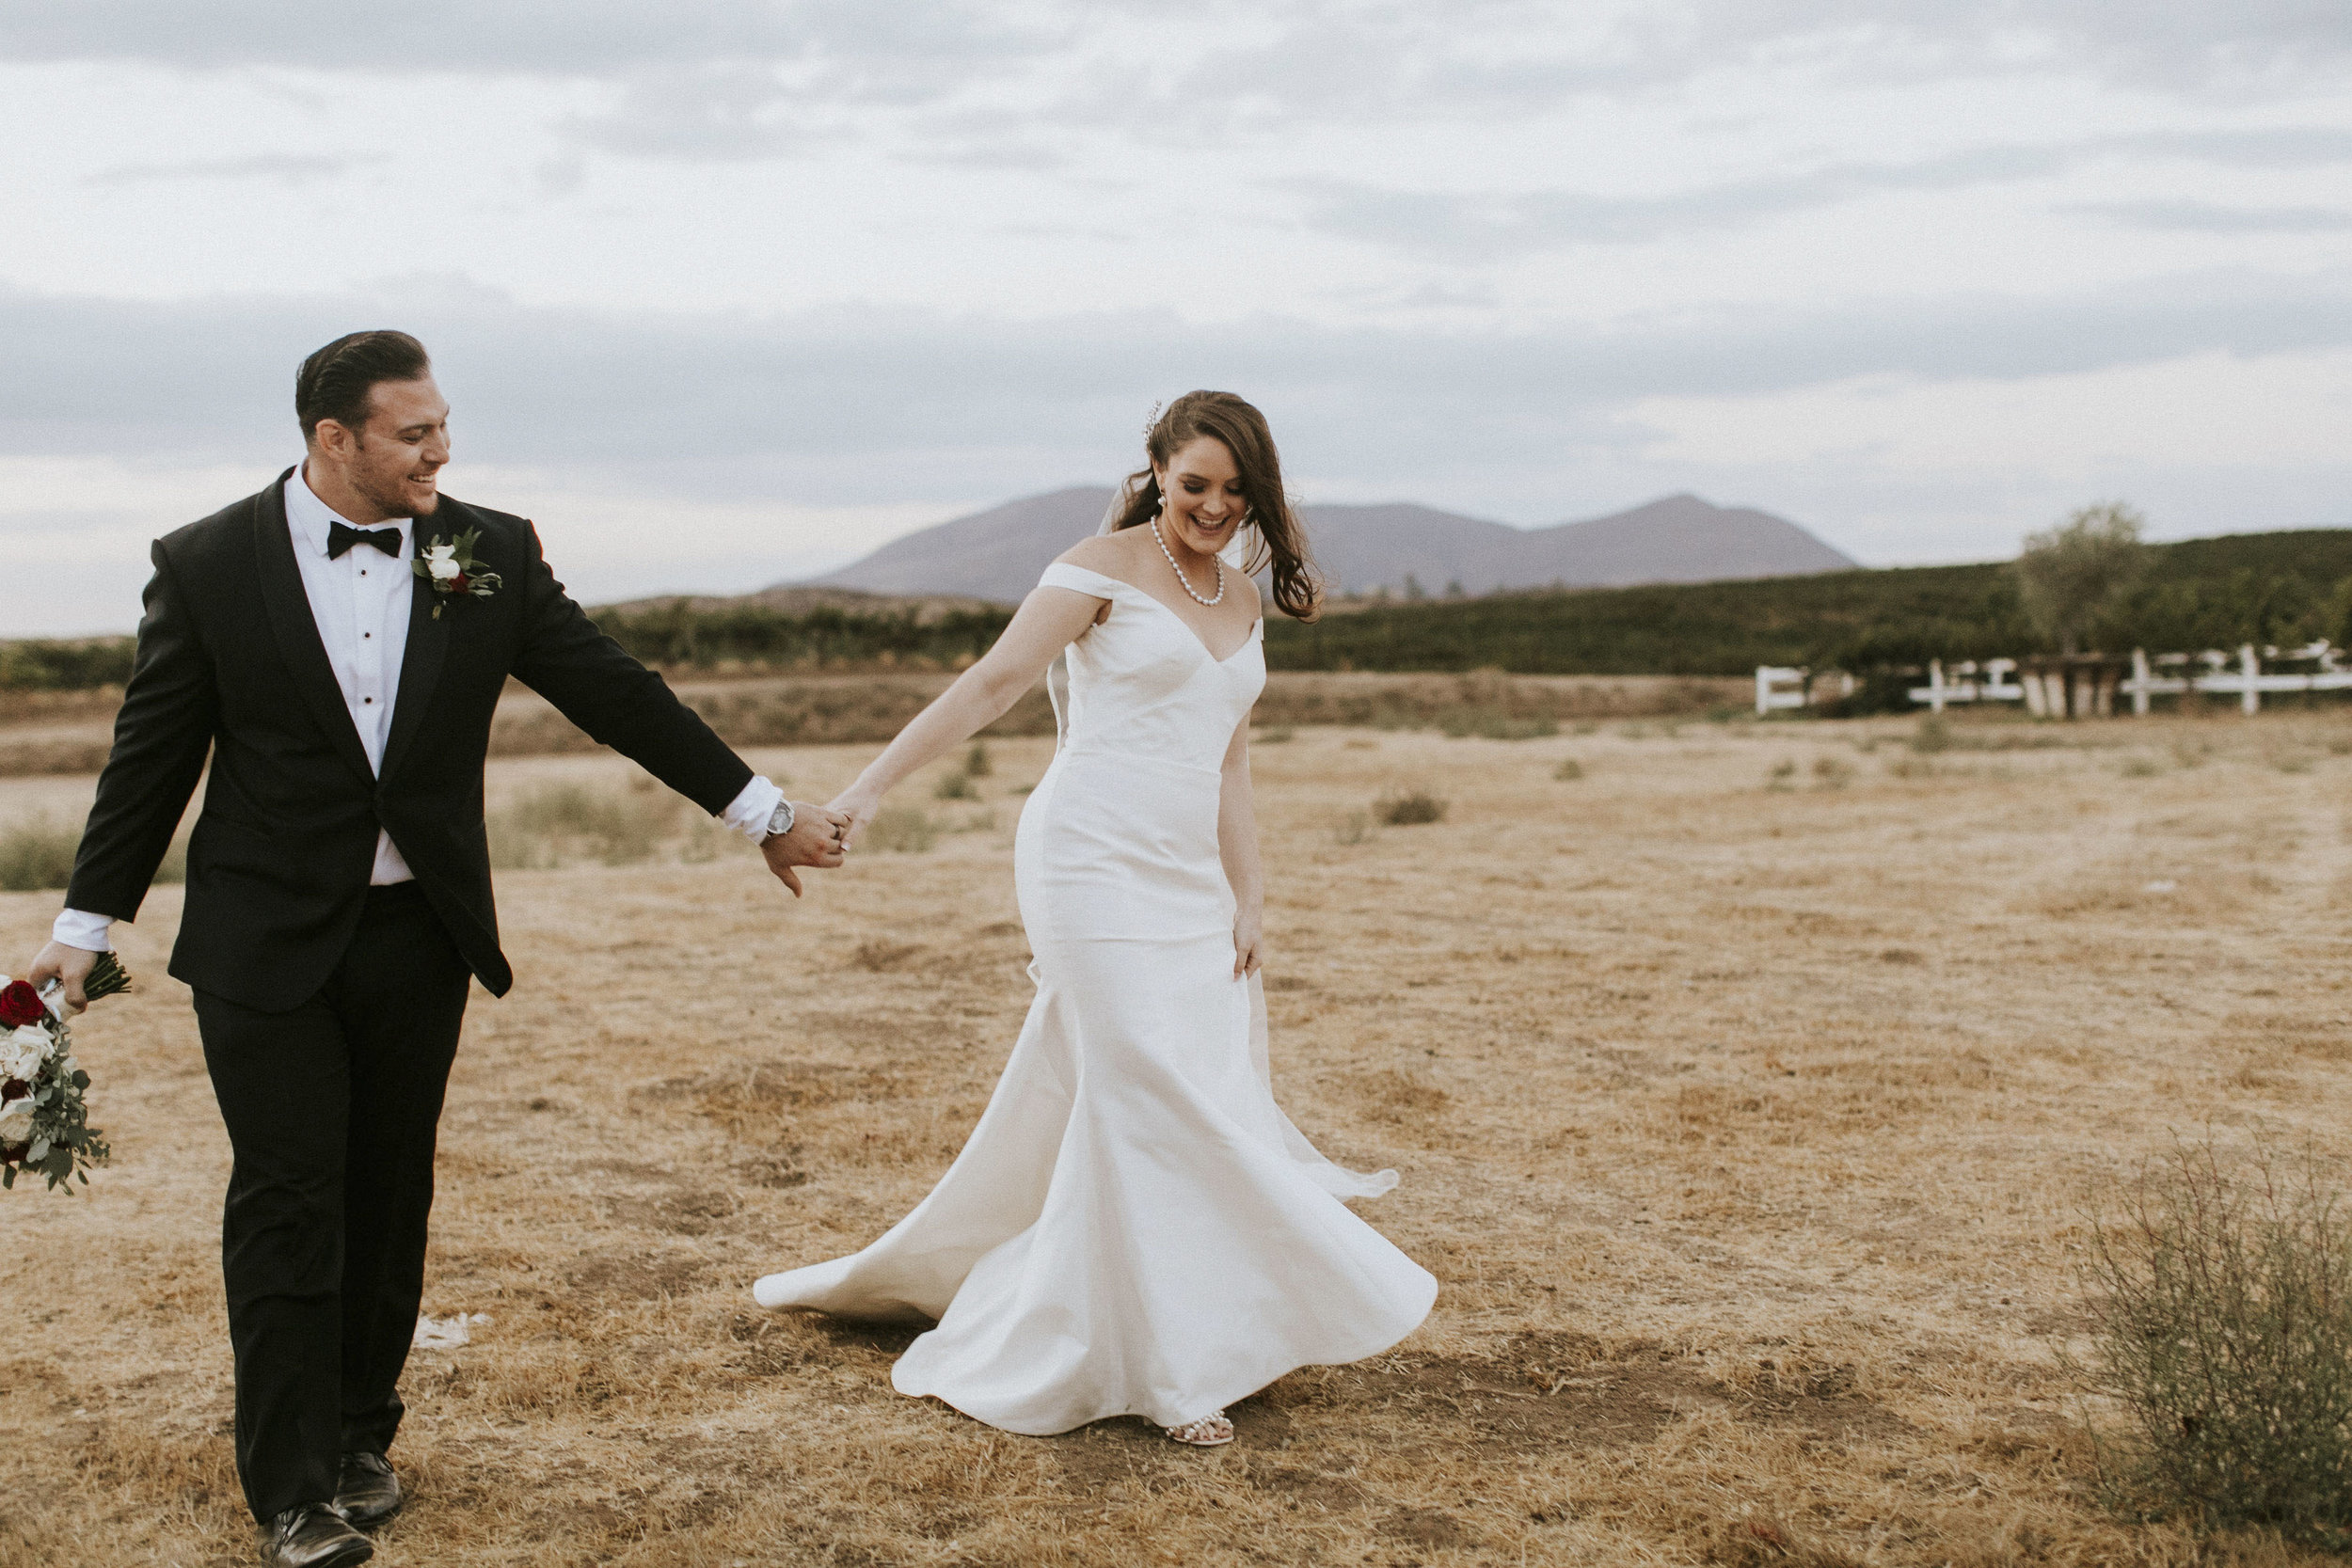 Domenica Beauty _ Hair and Makeup Artist _Wedding _ Temecula, CA _ Catherine and Darryl _ 47.JPG